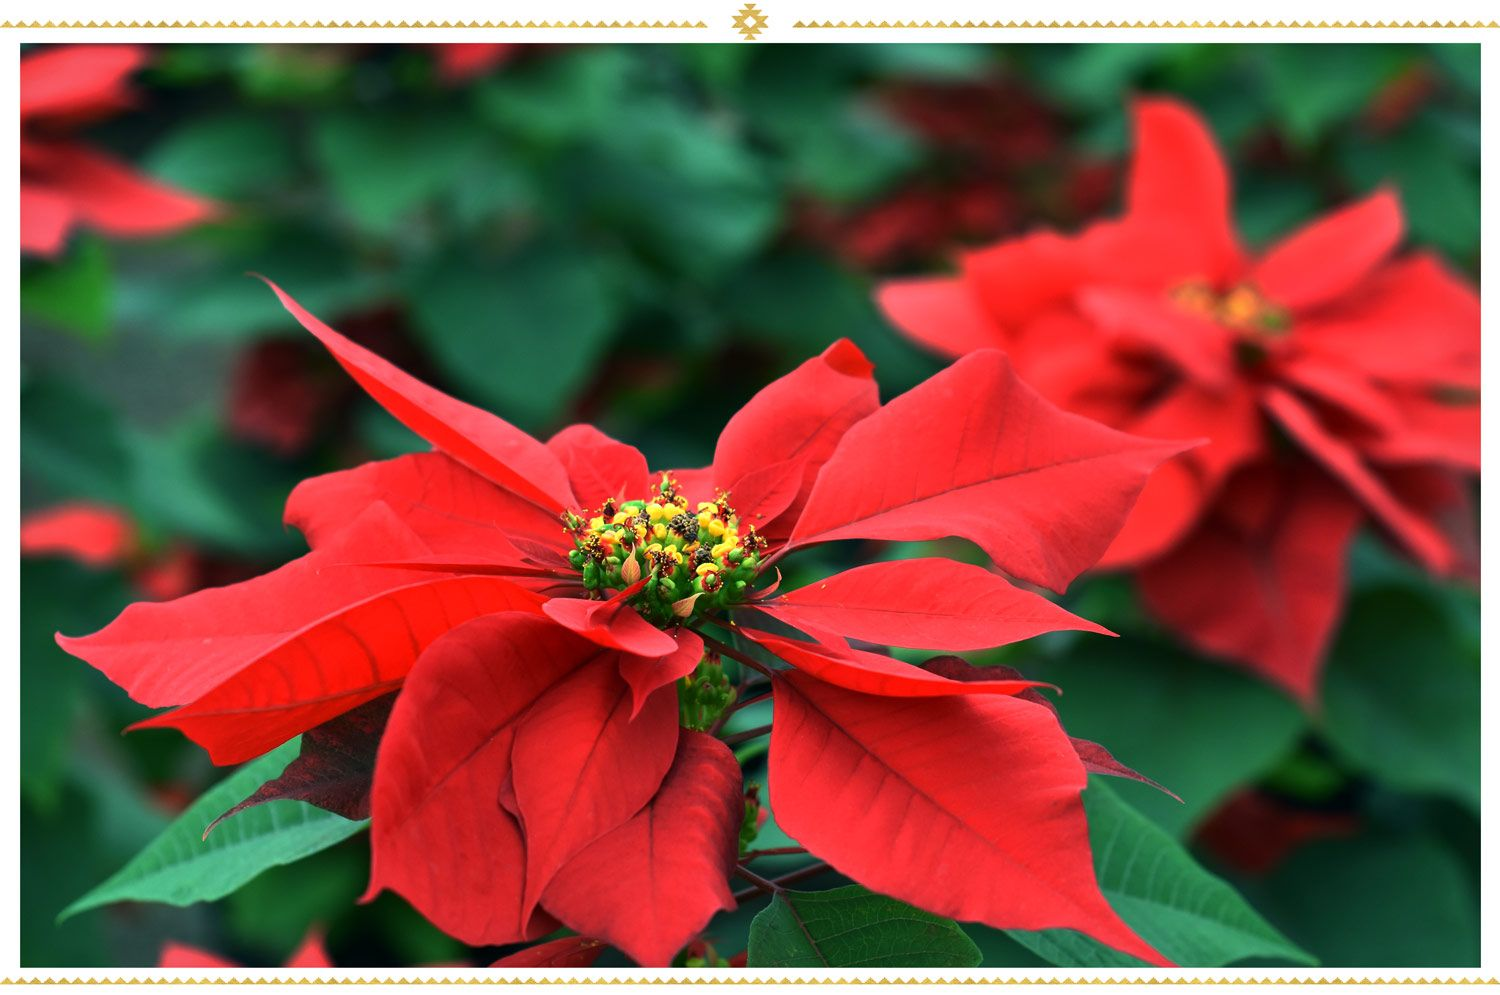 15 Mexican Flowers Symbolism And Where To Find Them Proflowers Blog Mexican Flowers Mexican Sunflower Christmas Plants